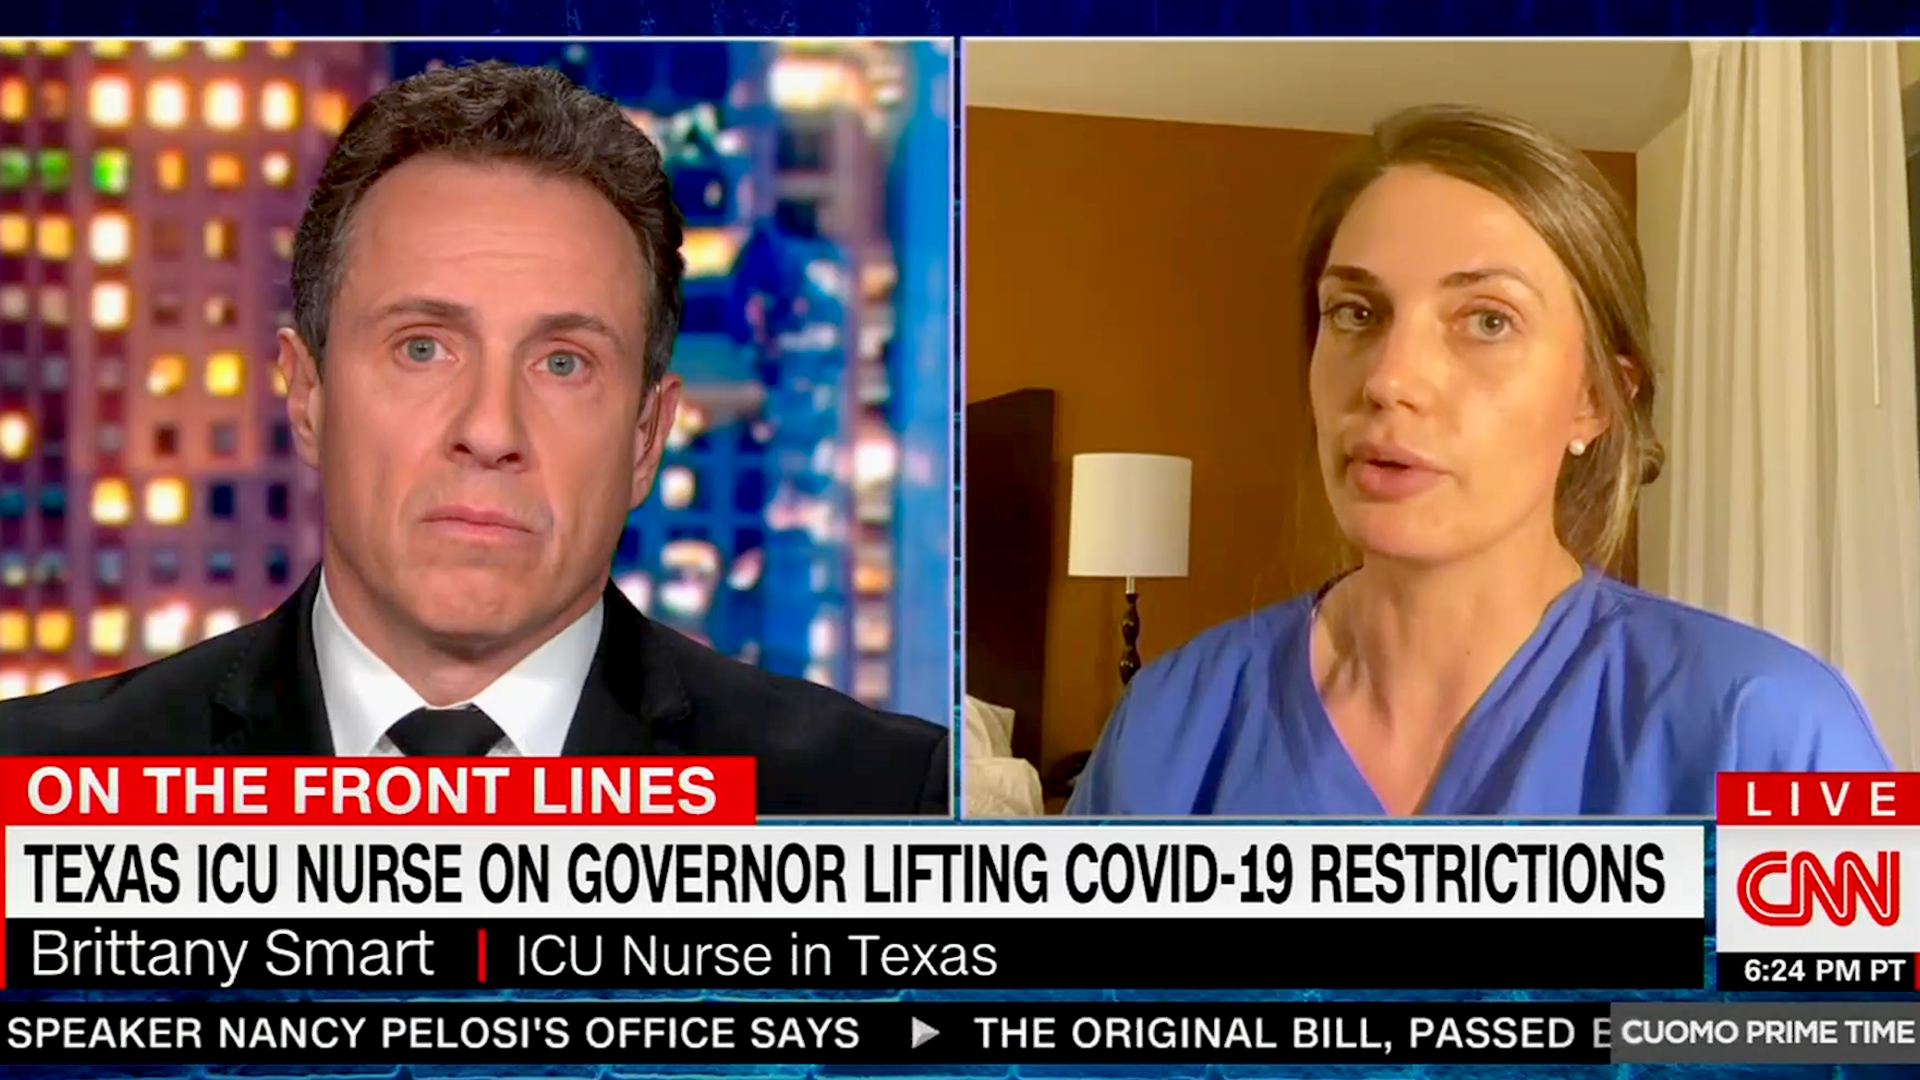 Texas ICU nurse weighs in on Texas lifting COVID restrictions: 'I'm scared of what this is gonna look like'